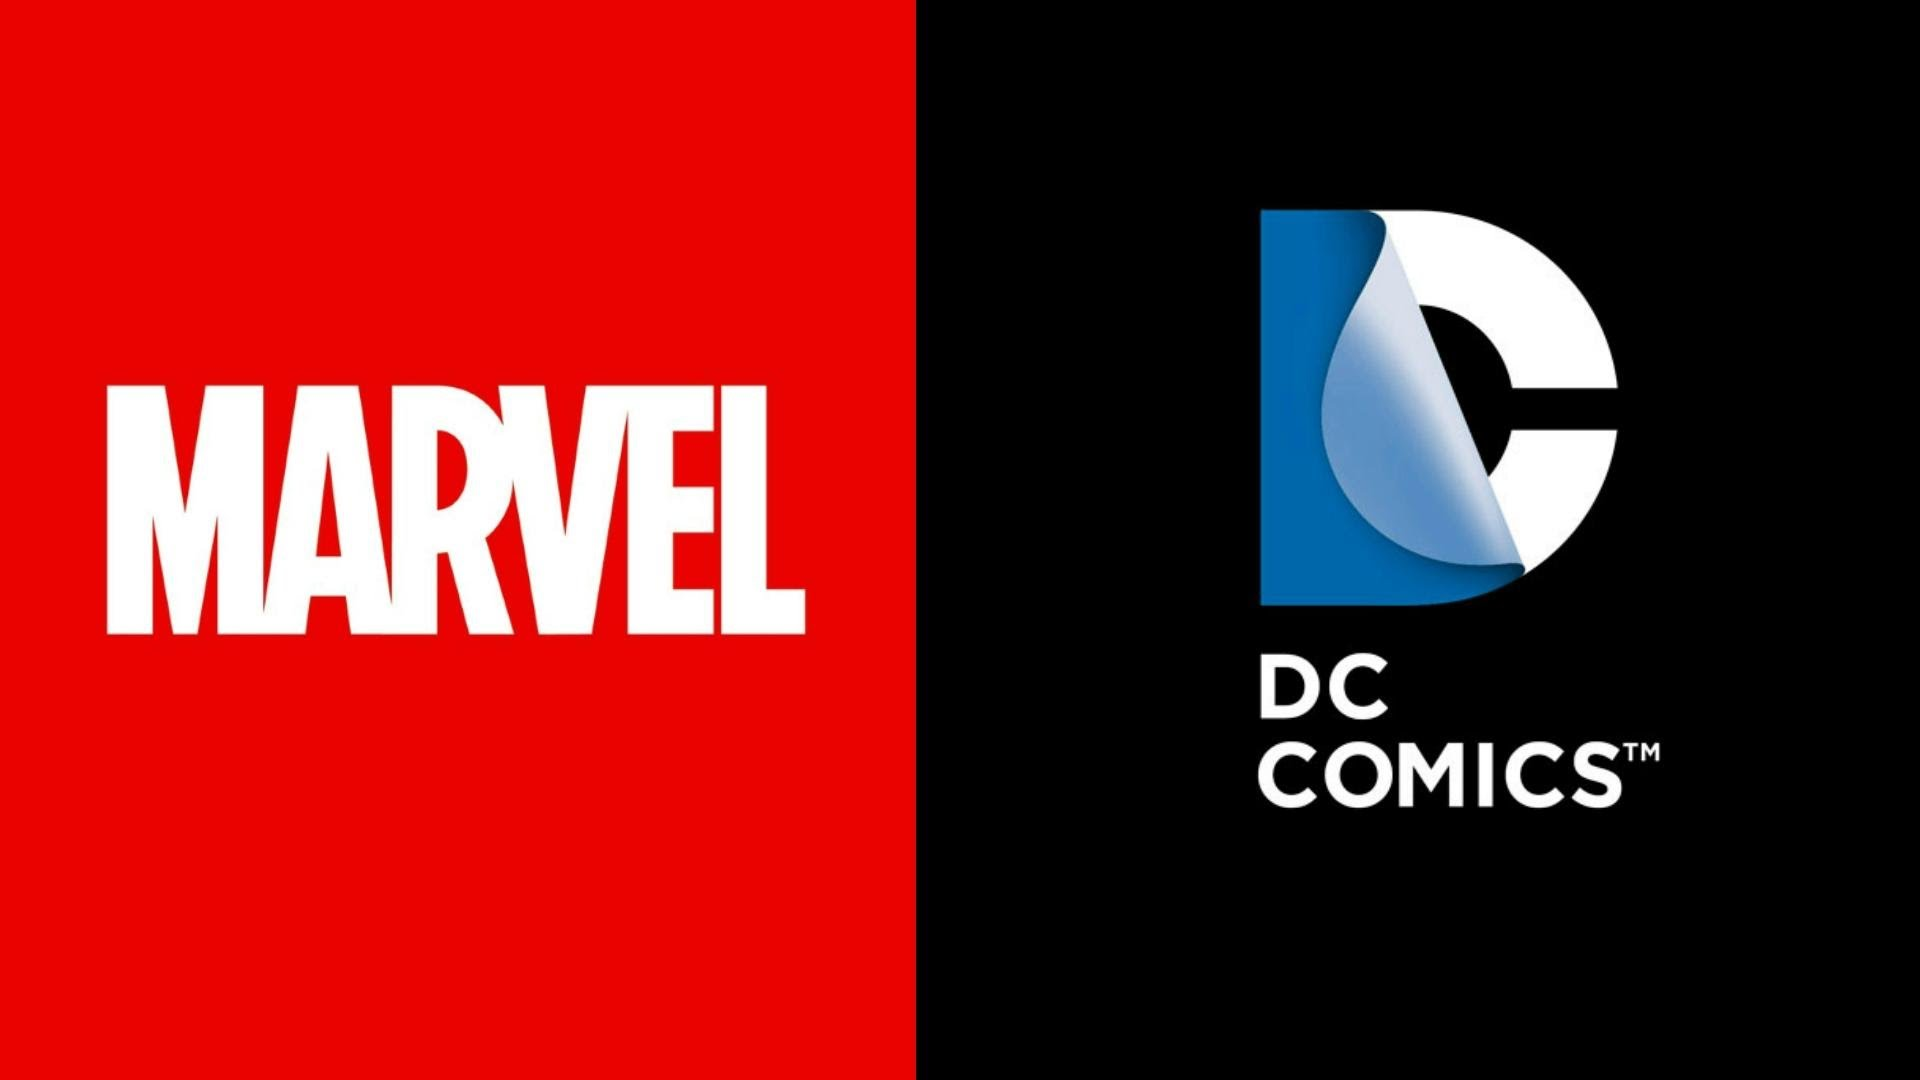 marvel vs dc